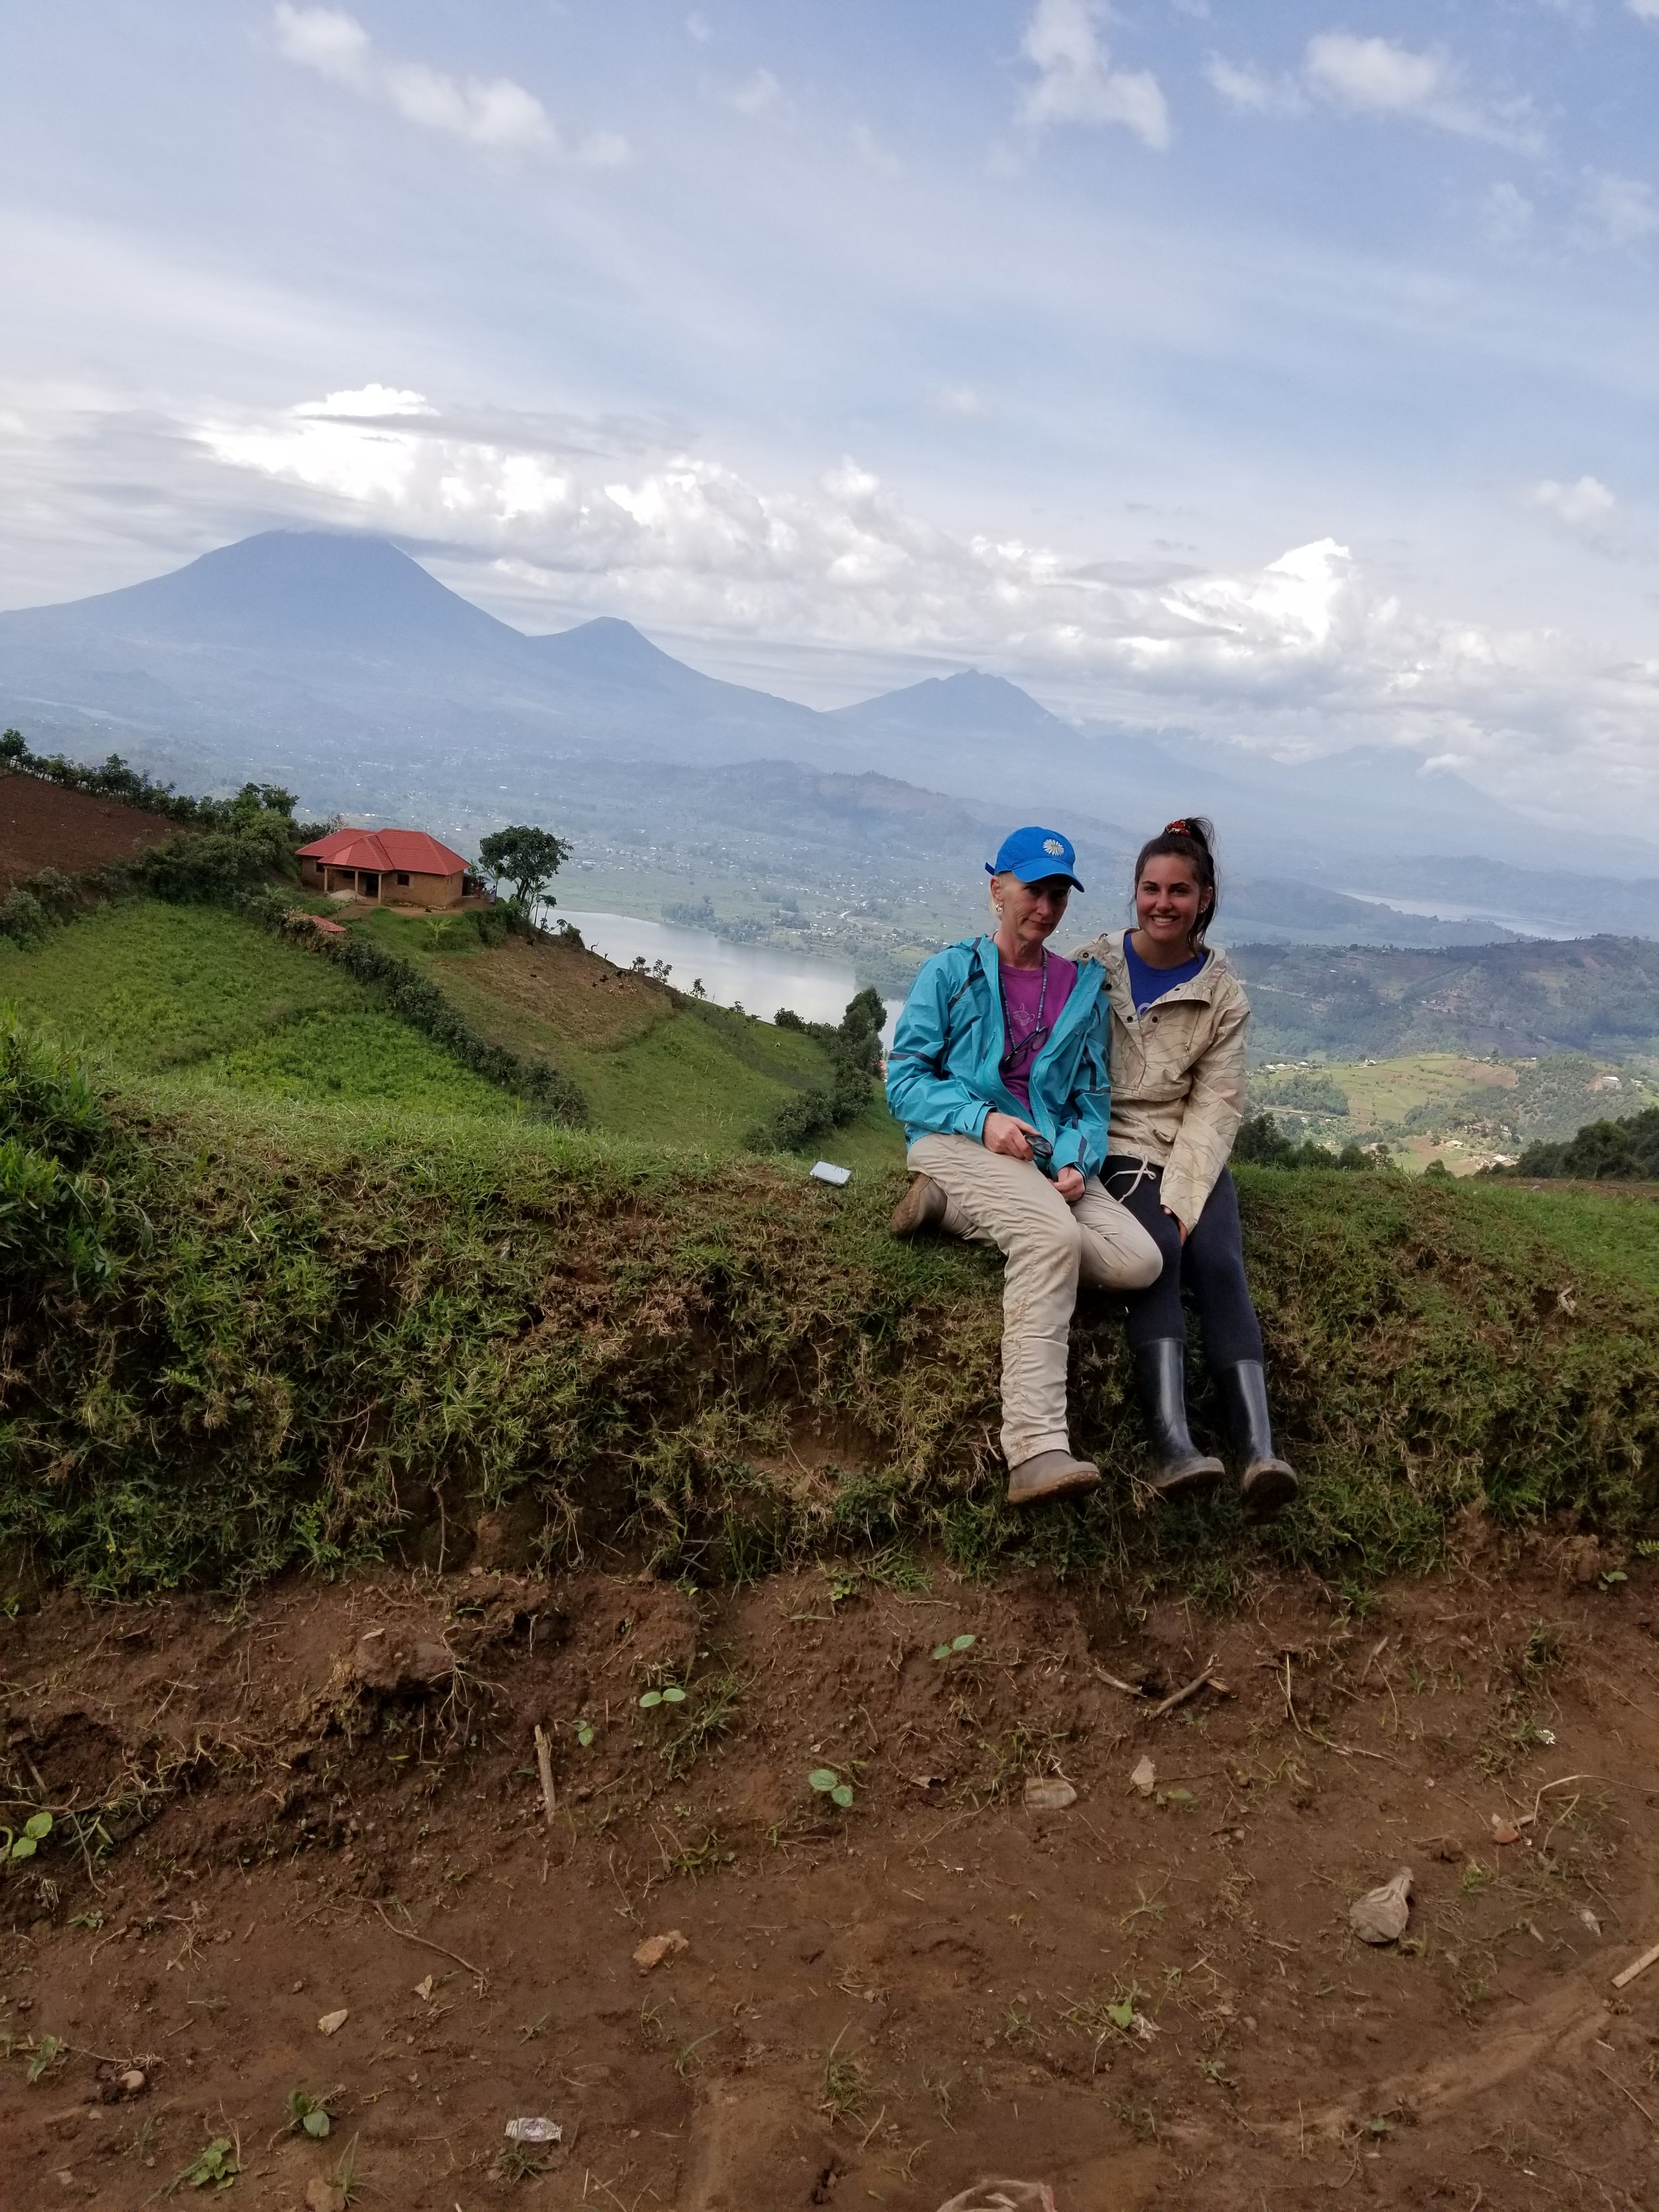 Take your mum to work week(s)! My mum came to visit for two weeks and this is us on our way home from the field with the Virungas in the background.